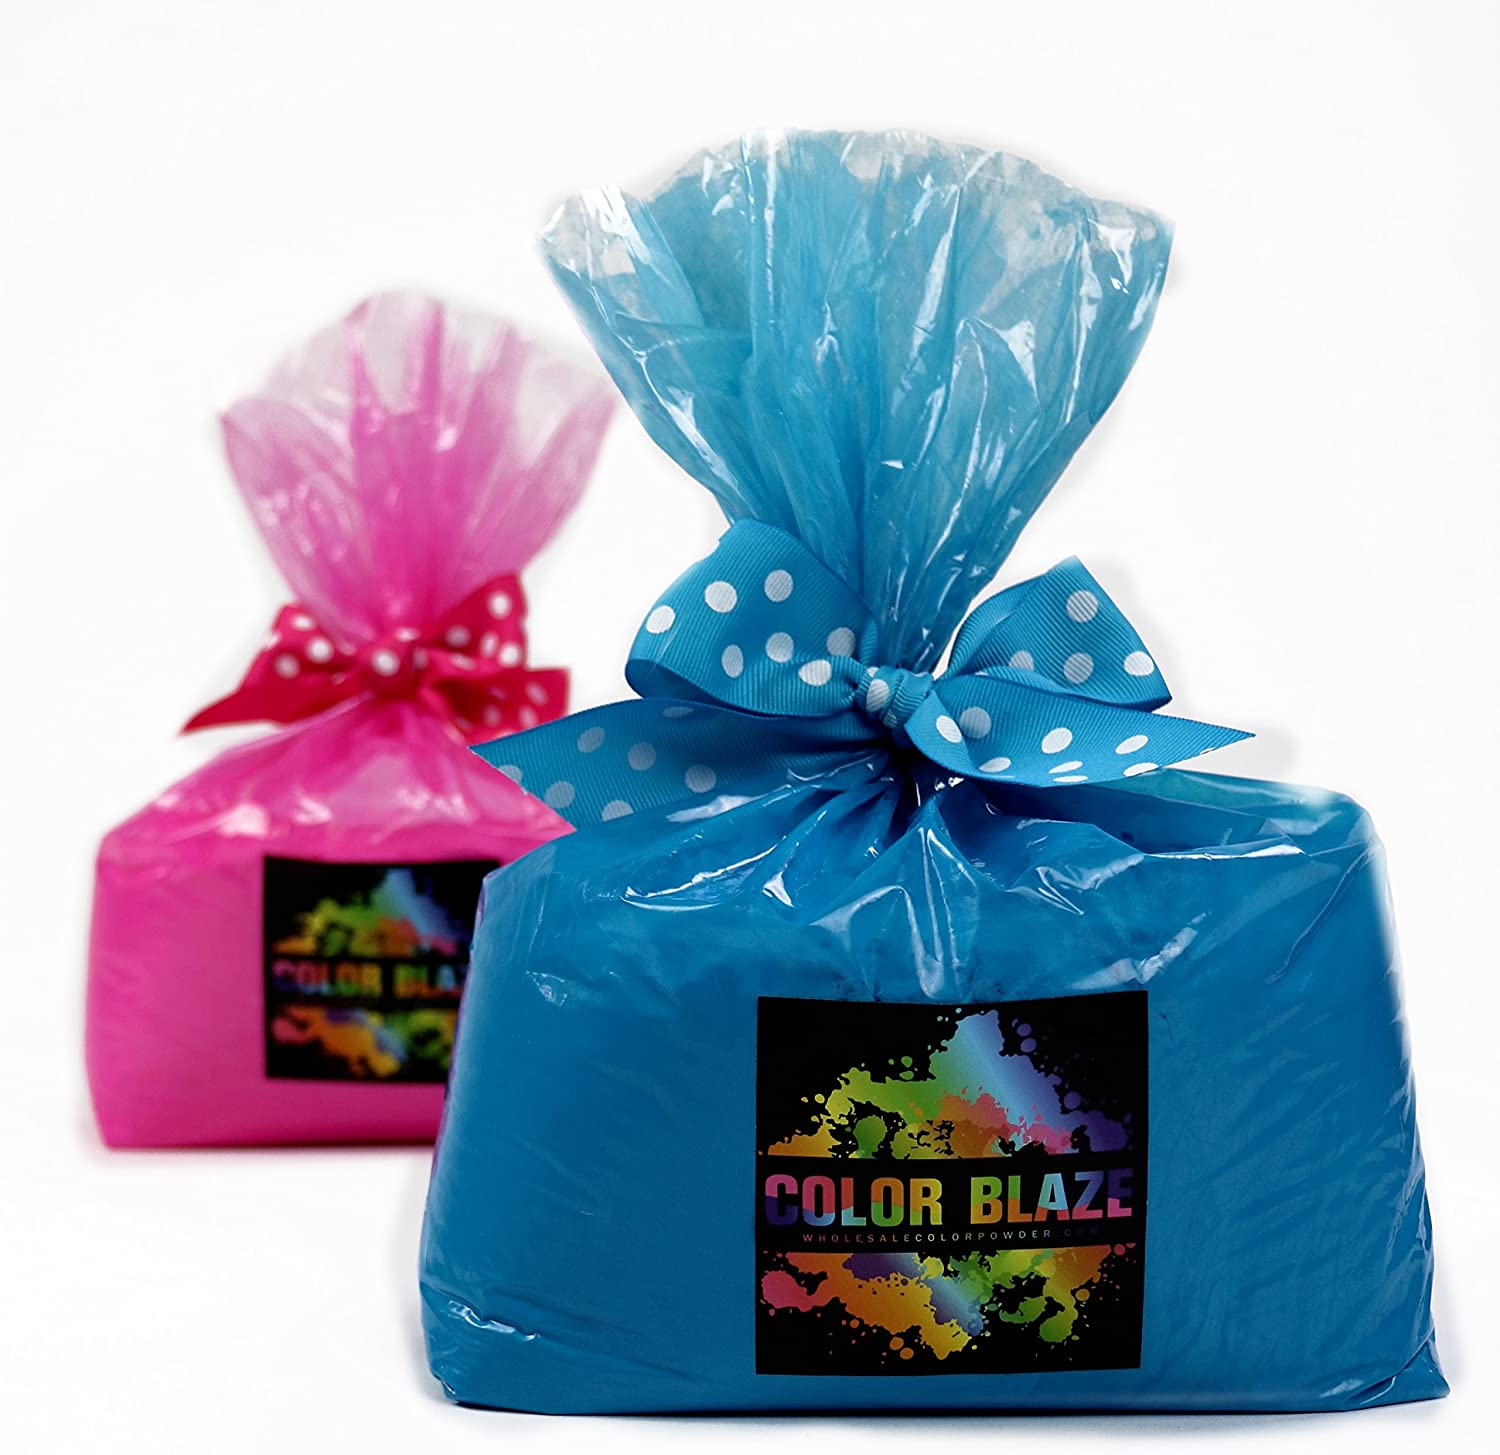 5 lbs Pink and Blue - Combo Set - 10 Pounds in total, 5 pounds Pink and 5 pounds Blue - Perfect for Gender Reveals, Burnouts, Color Toss, Photoshoot and more!